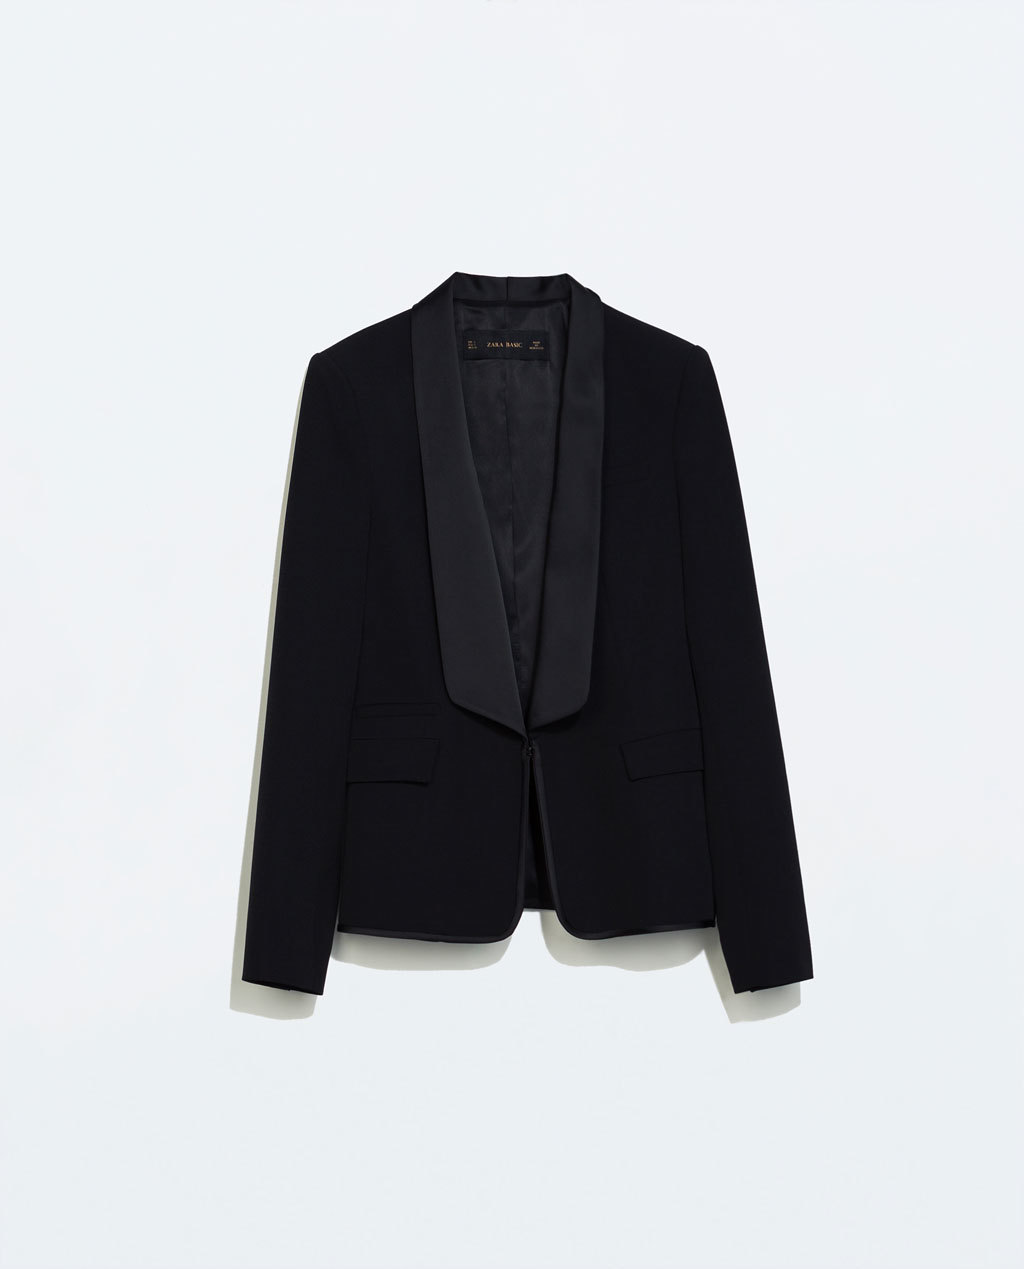 Blazer With Combined Lapel - pattern: plain; style: single breasted blazer; collar: shawl/waterfall; predominant colour: black; occasions: evening, work, occasion; length: standard; fit: tailored/fitted; fibres: polyester/polyamide - 100%; sleeve length: long sleeve; sleeve style: standard; collar break: low/open; pattern type: fabric; texture group: woven light midweight; season: a/w 2014